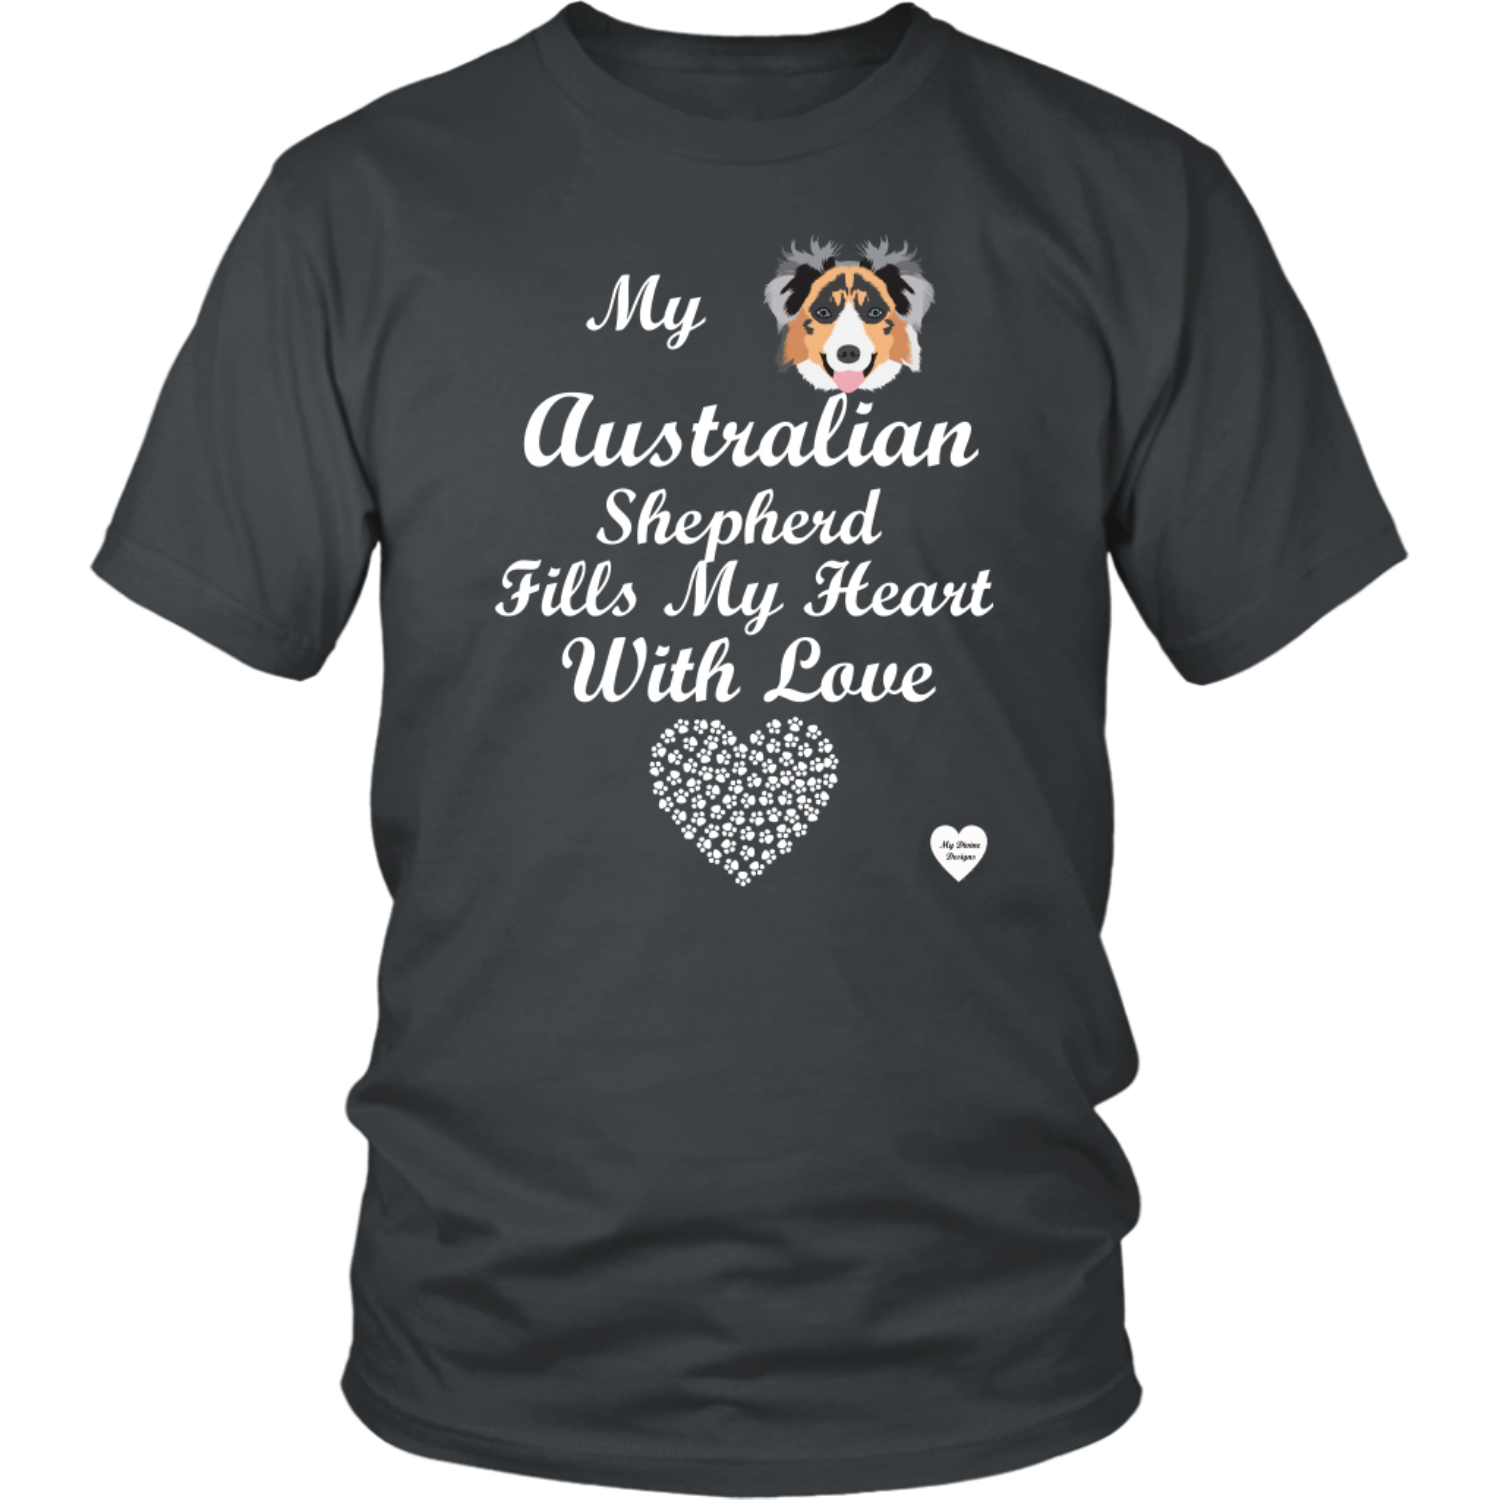 australian shepherd fills my heart t-shirt charcoal